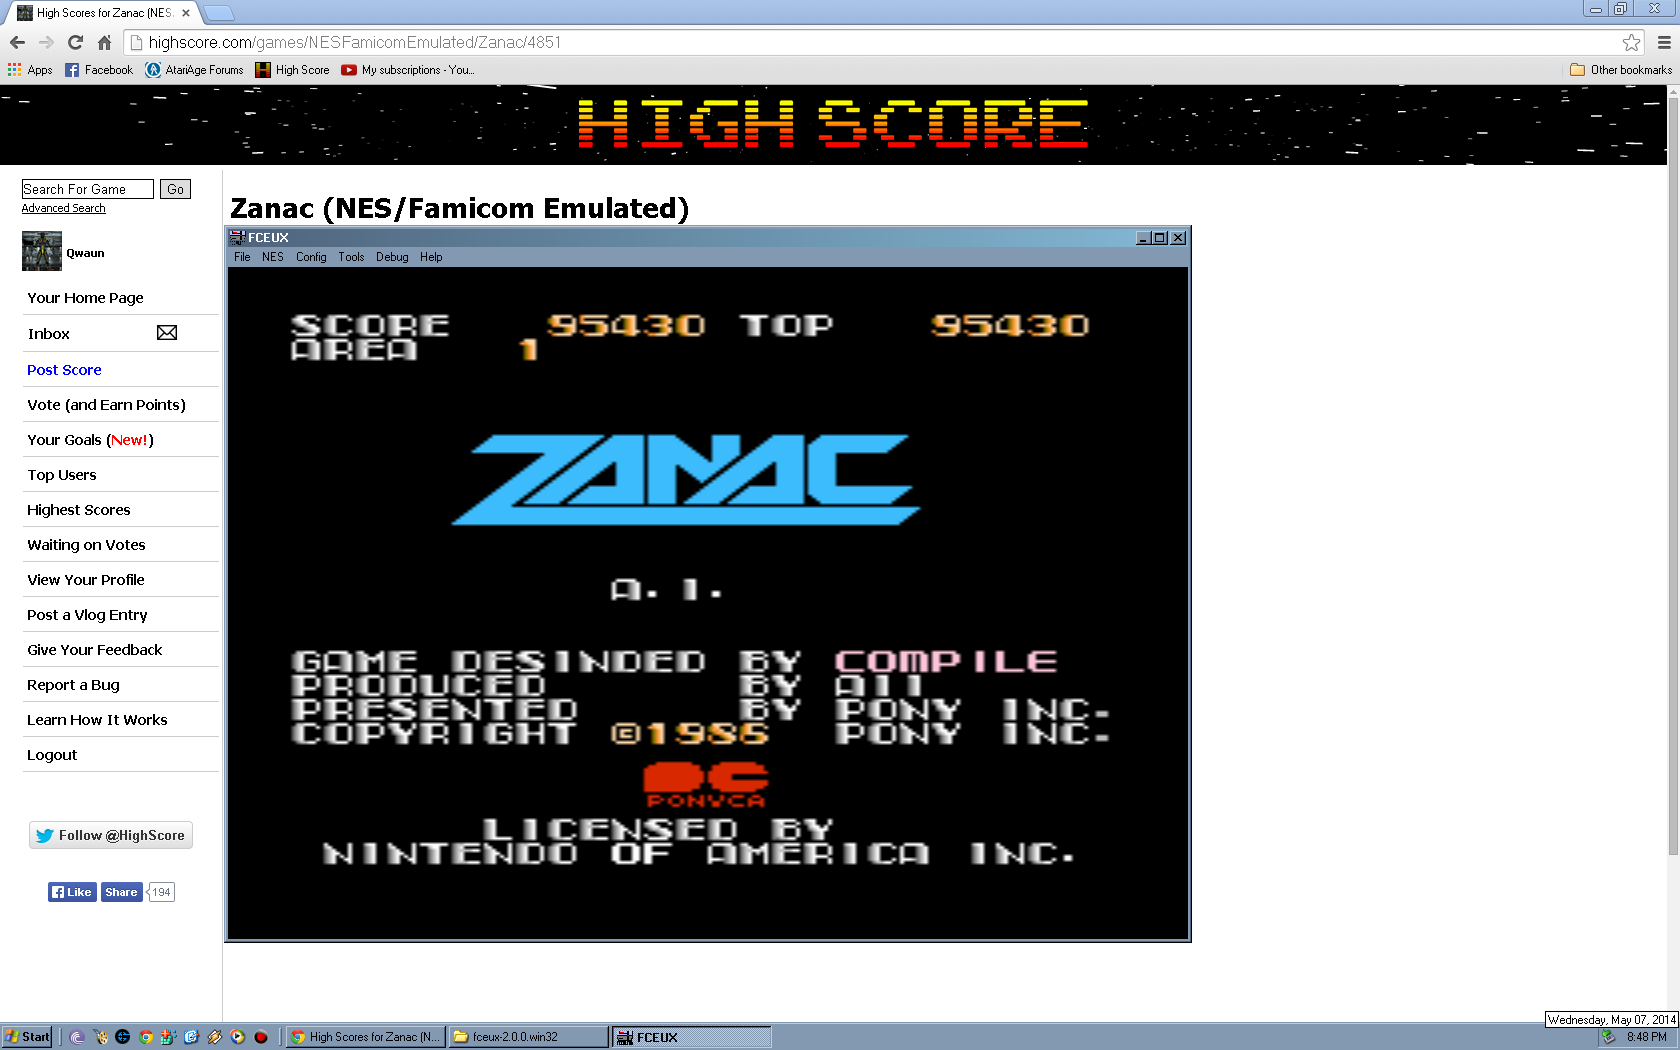 Qwaun: Zanac (NES/Famicom Emulated) 95,430 points on 2014-05-08 18:56:01